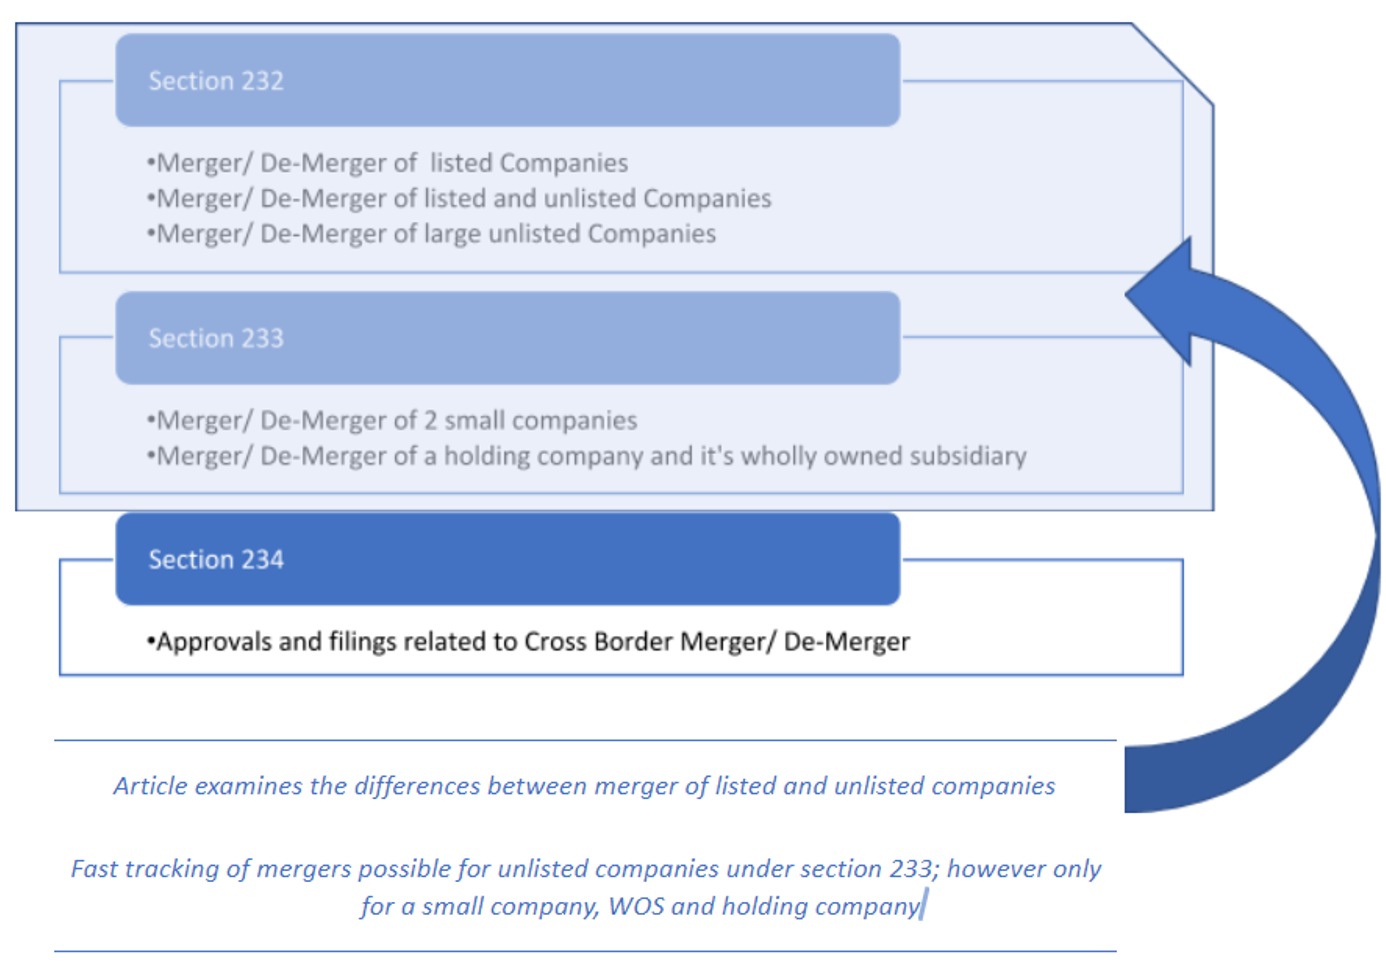 Differences Between Mergers Of Listed And Unlisted Companies